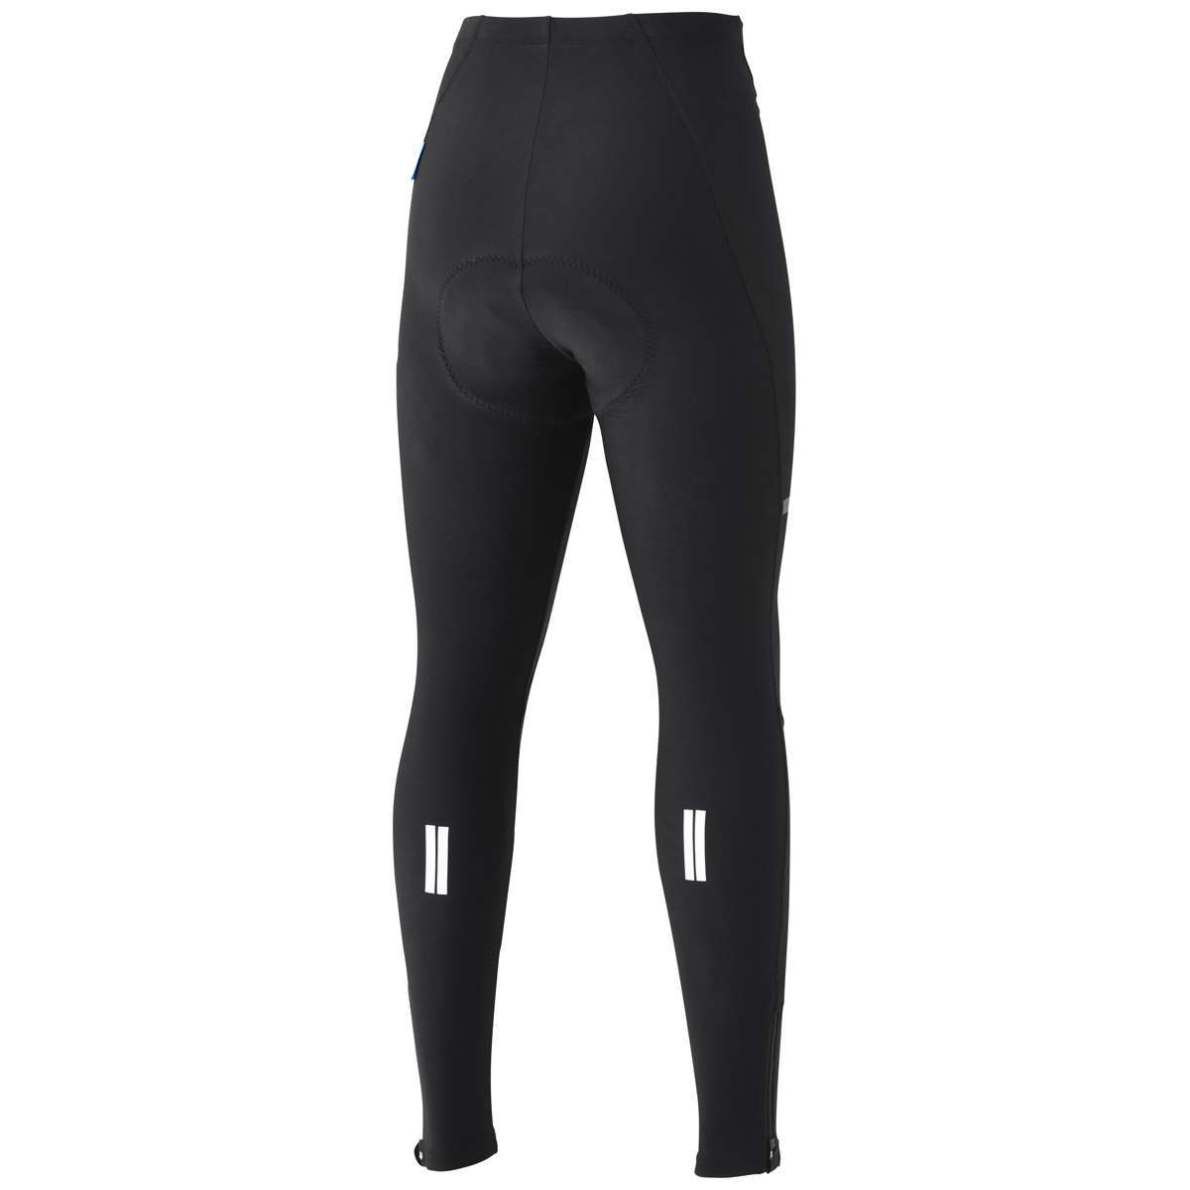 Shimano Fietsbroek Lang Winter